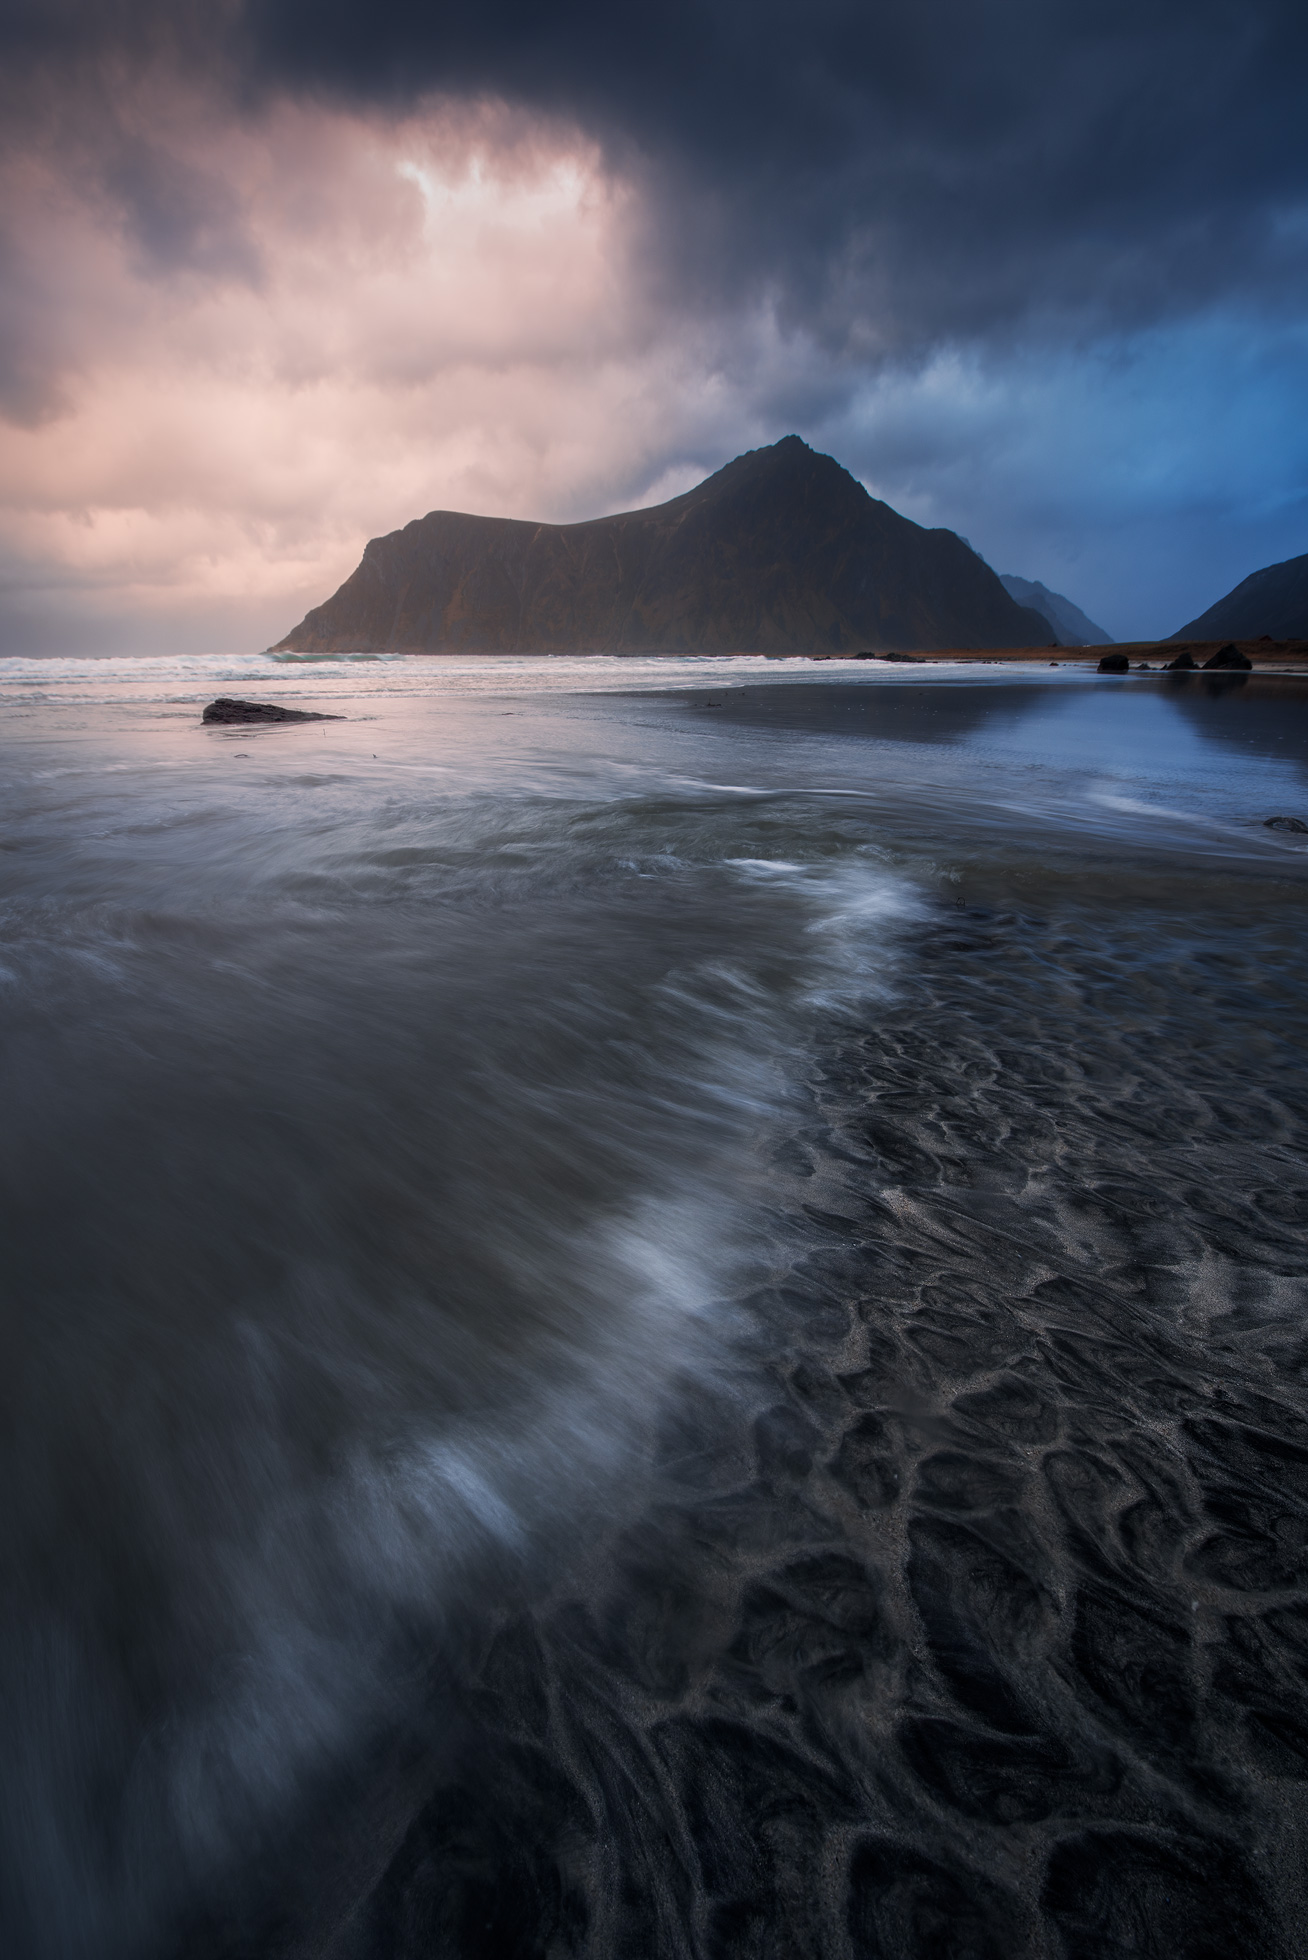 Seascape at Lofoten with waves in the foreground